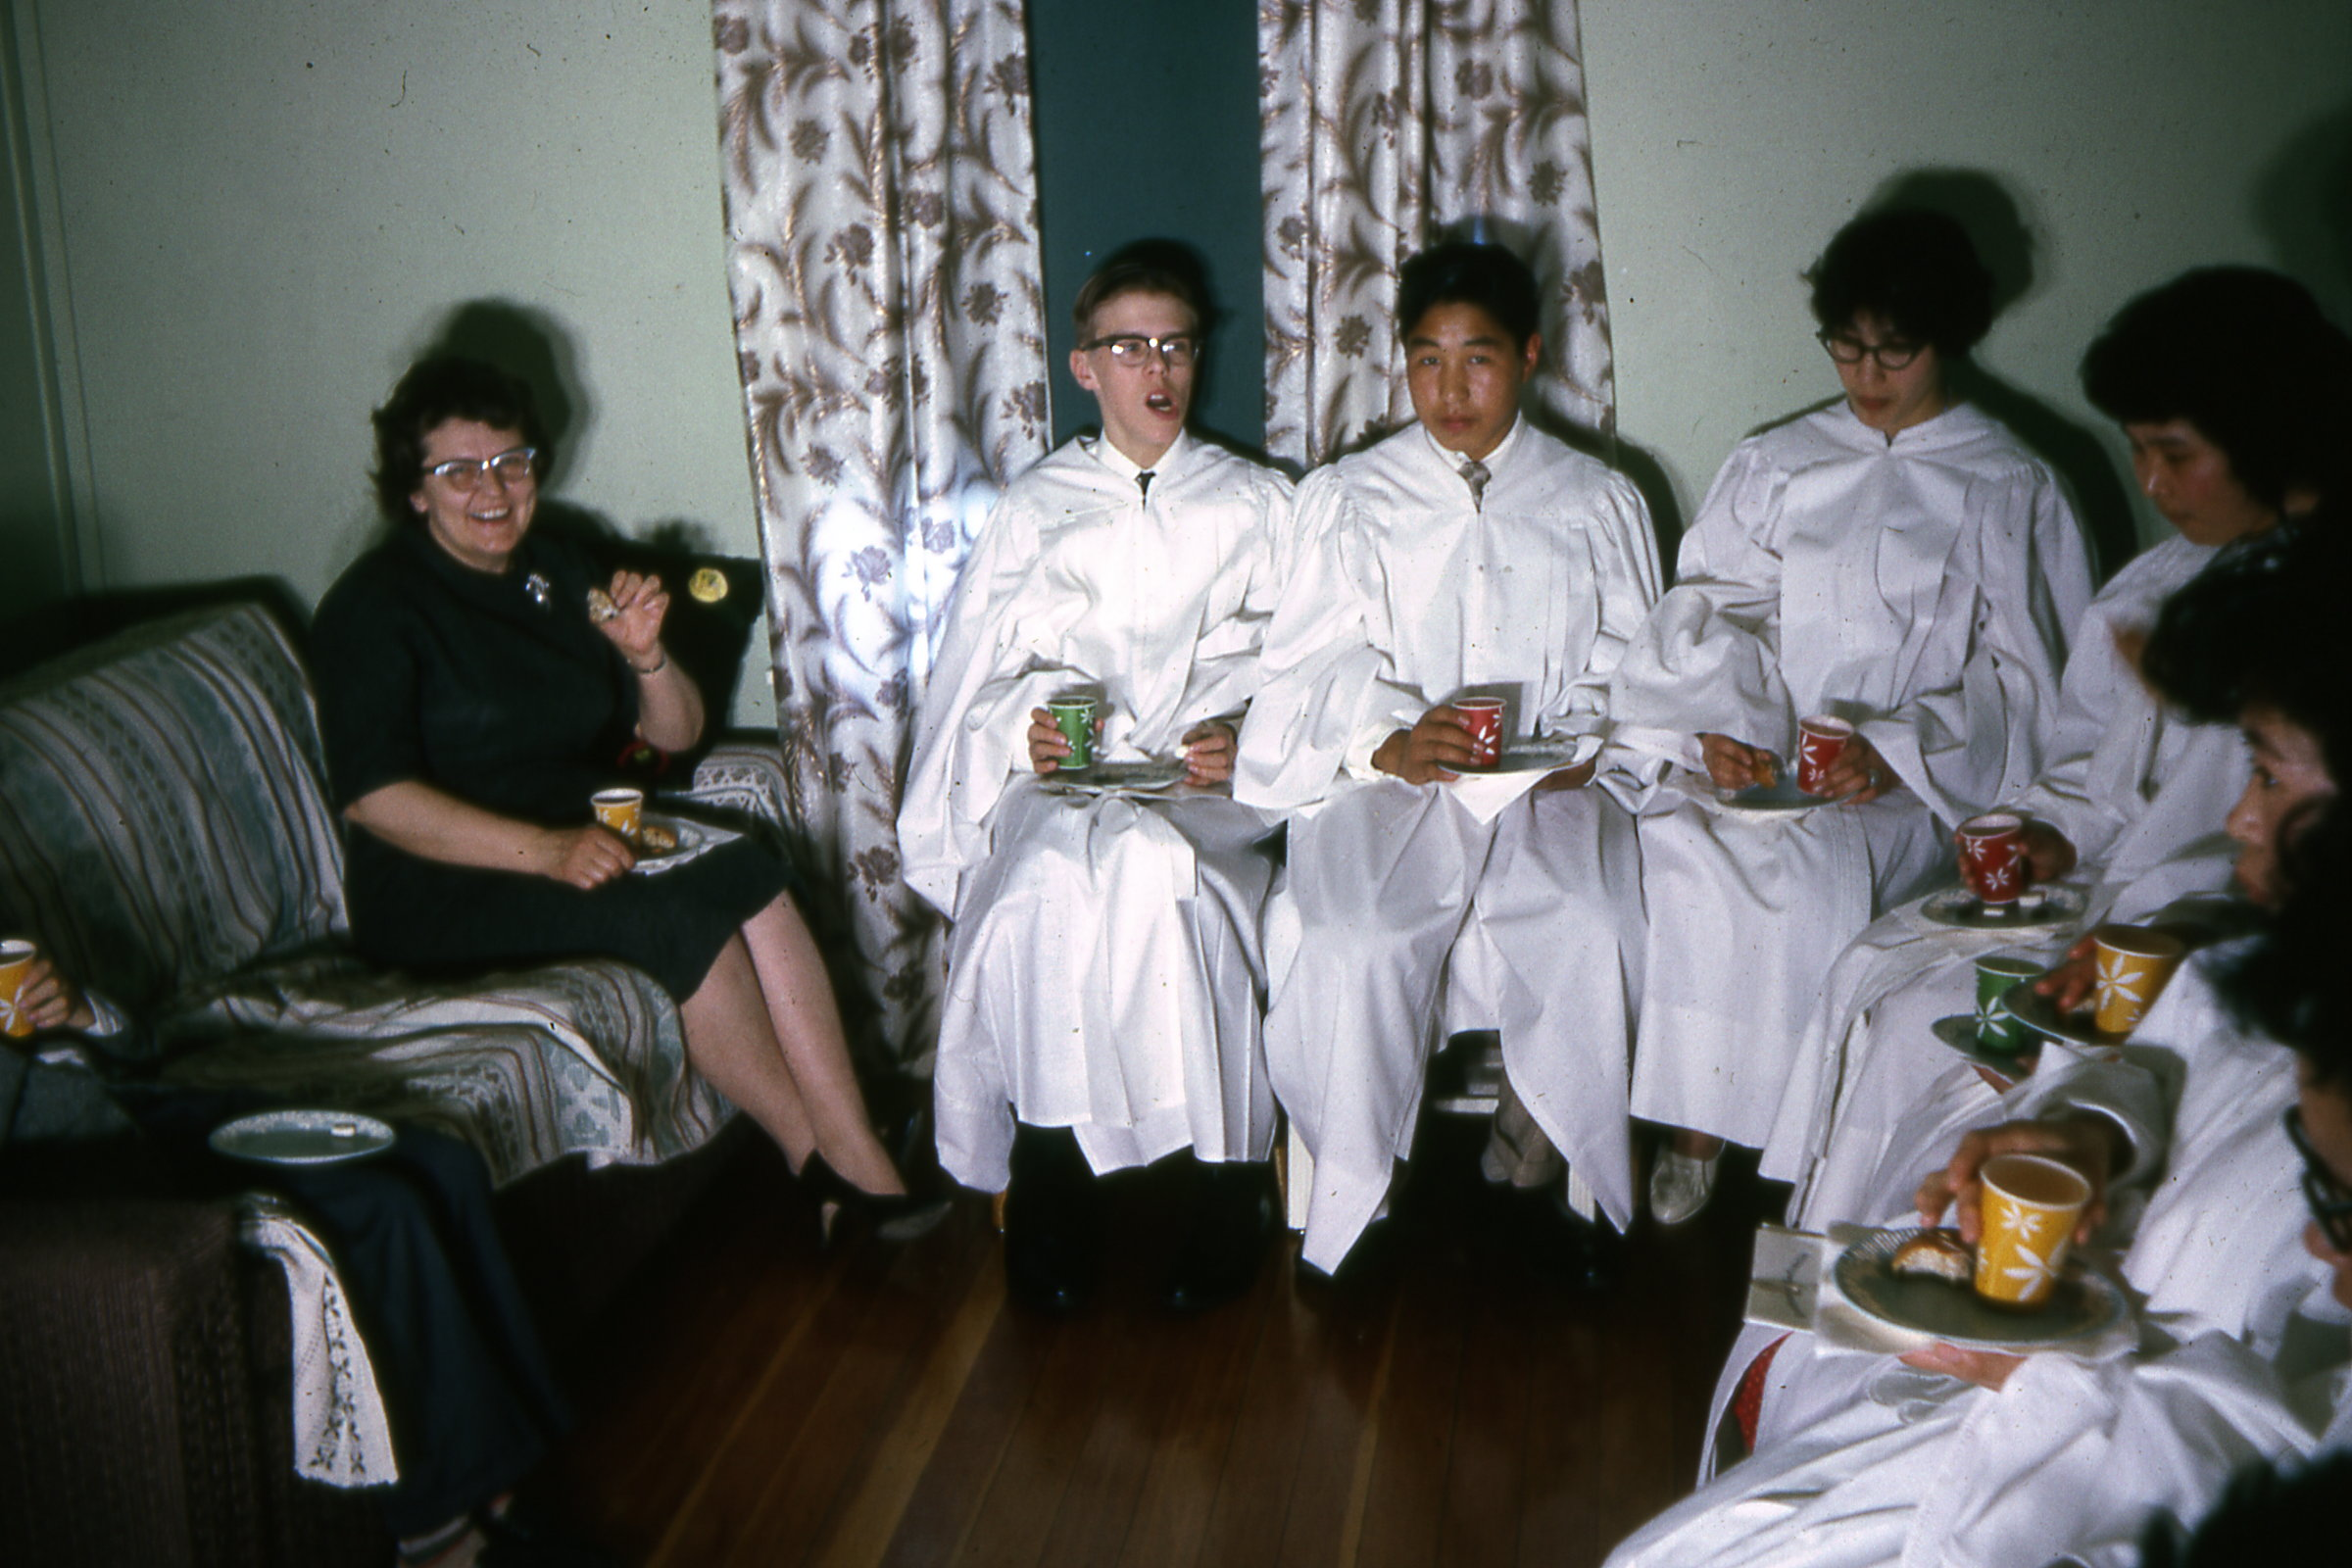 1965 Confirmation at MCH